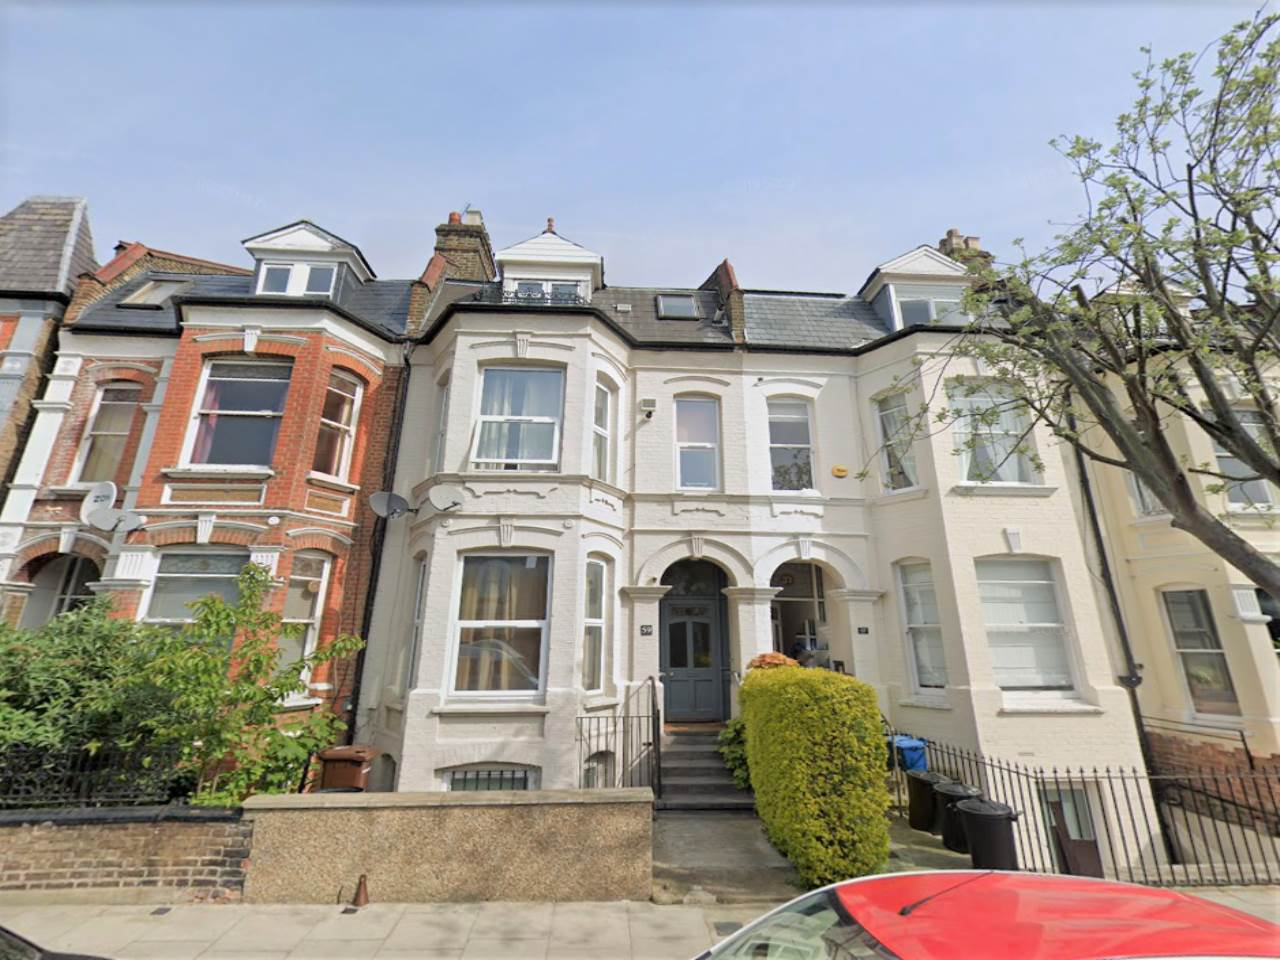 3 bed flat to rent in Stoke Newington, N16